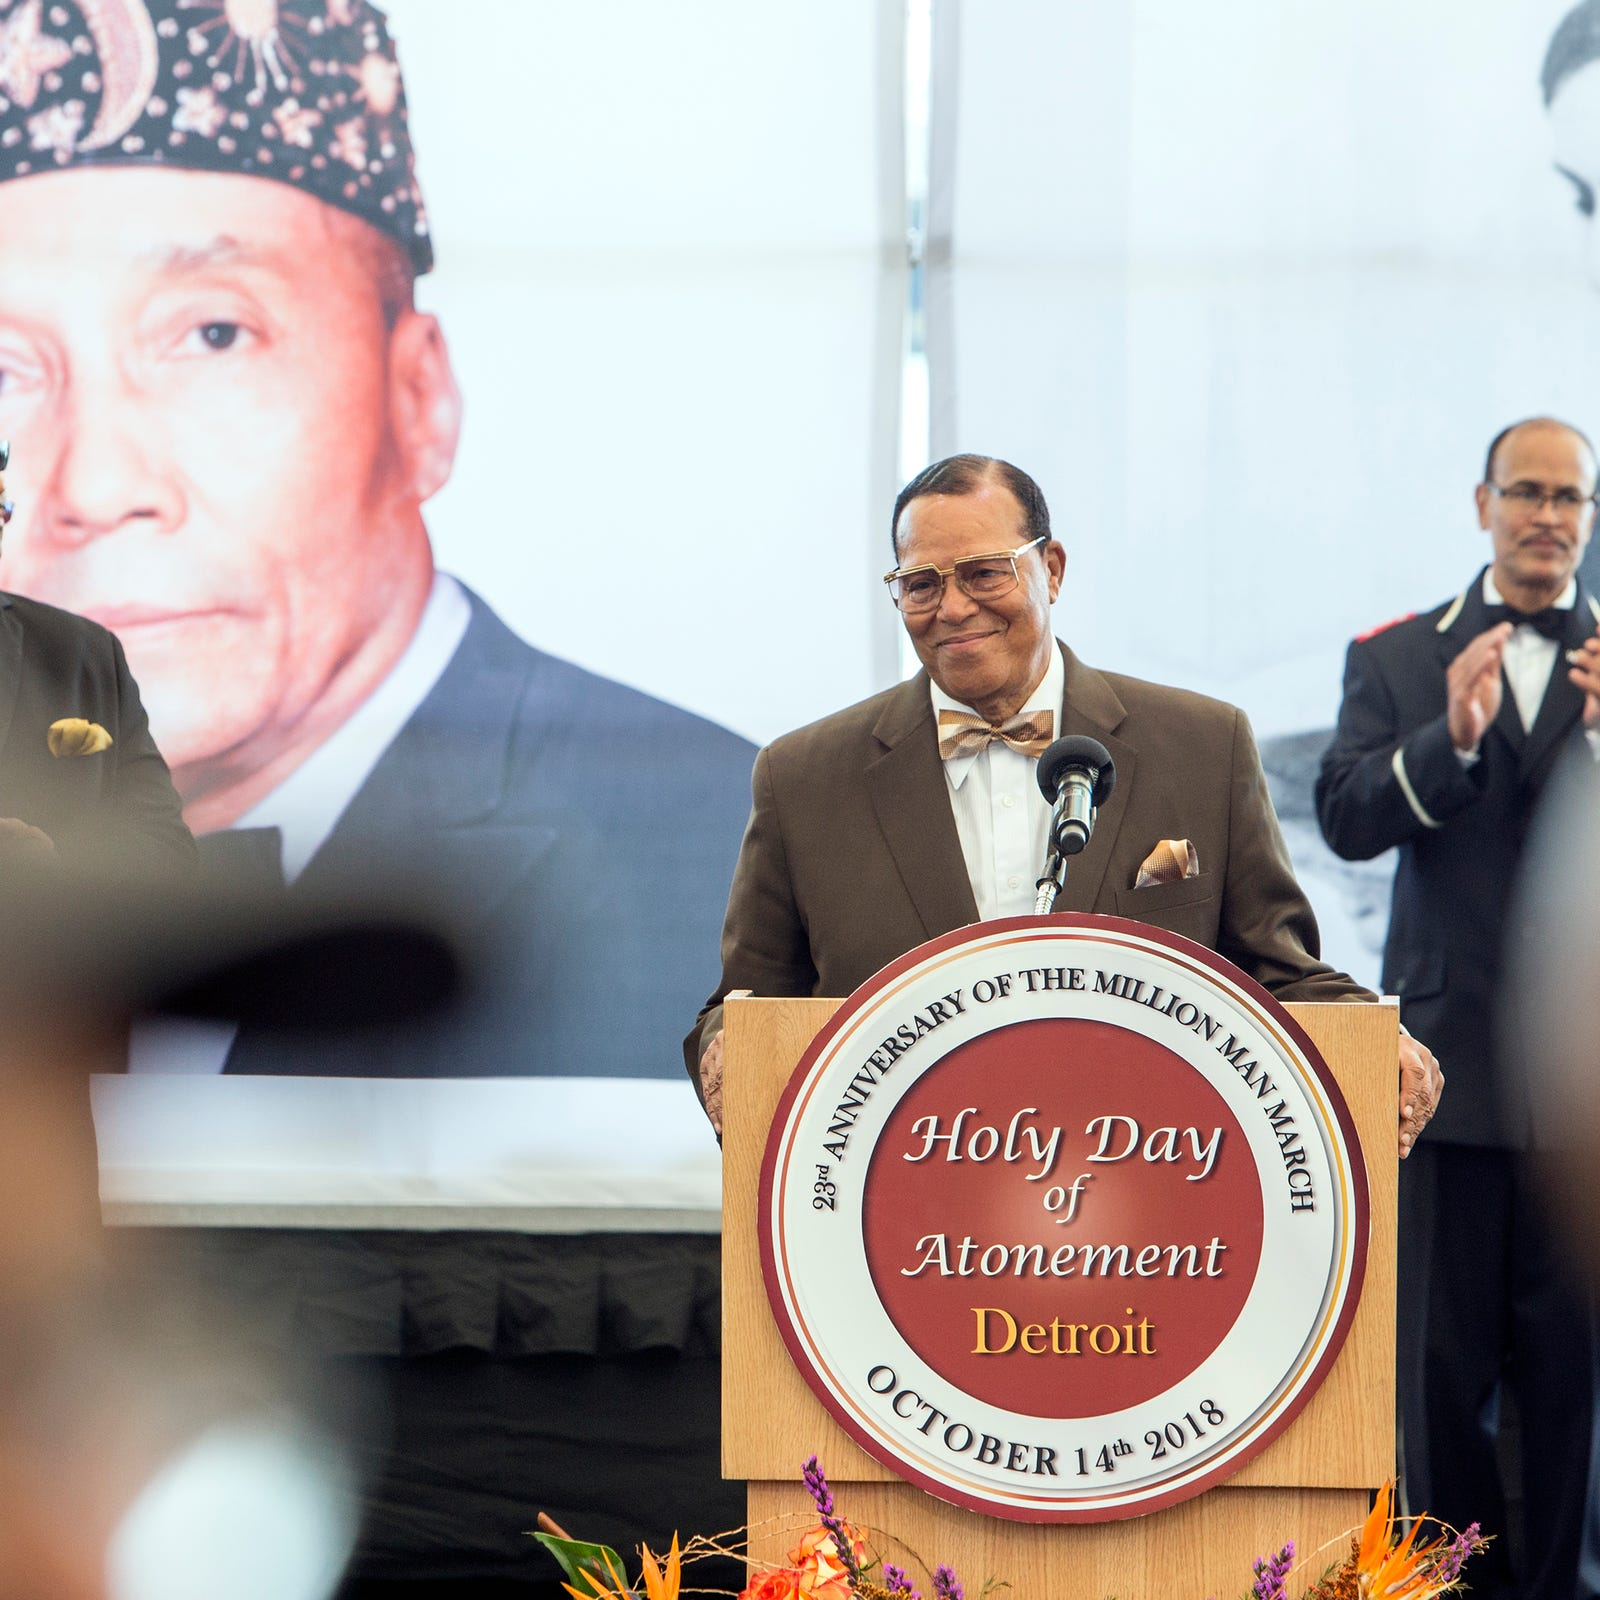 Farrakhan speaks on Aretha Franklin, Kanye West and others at Detroit event